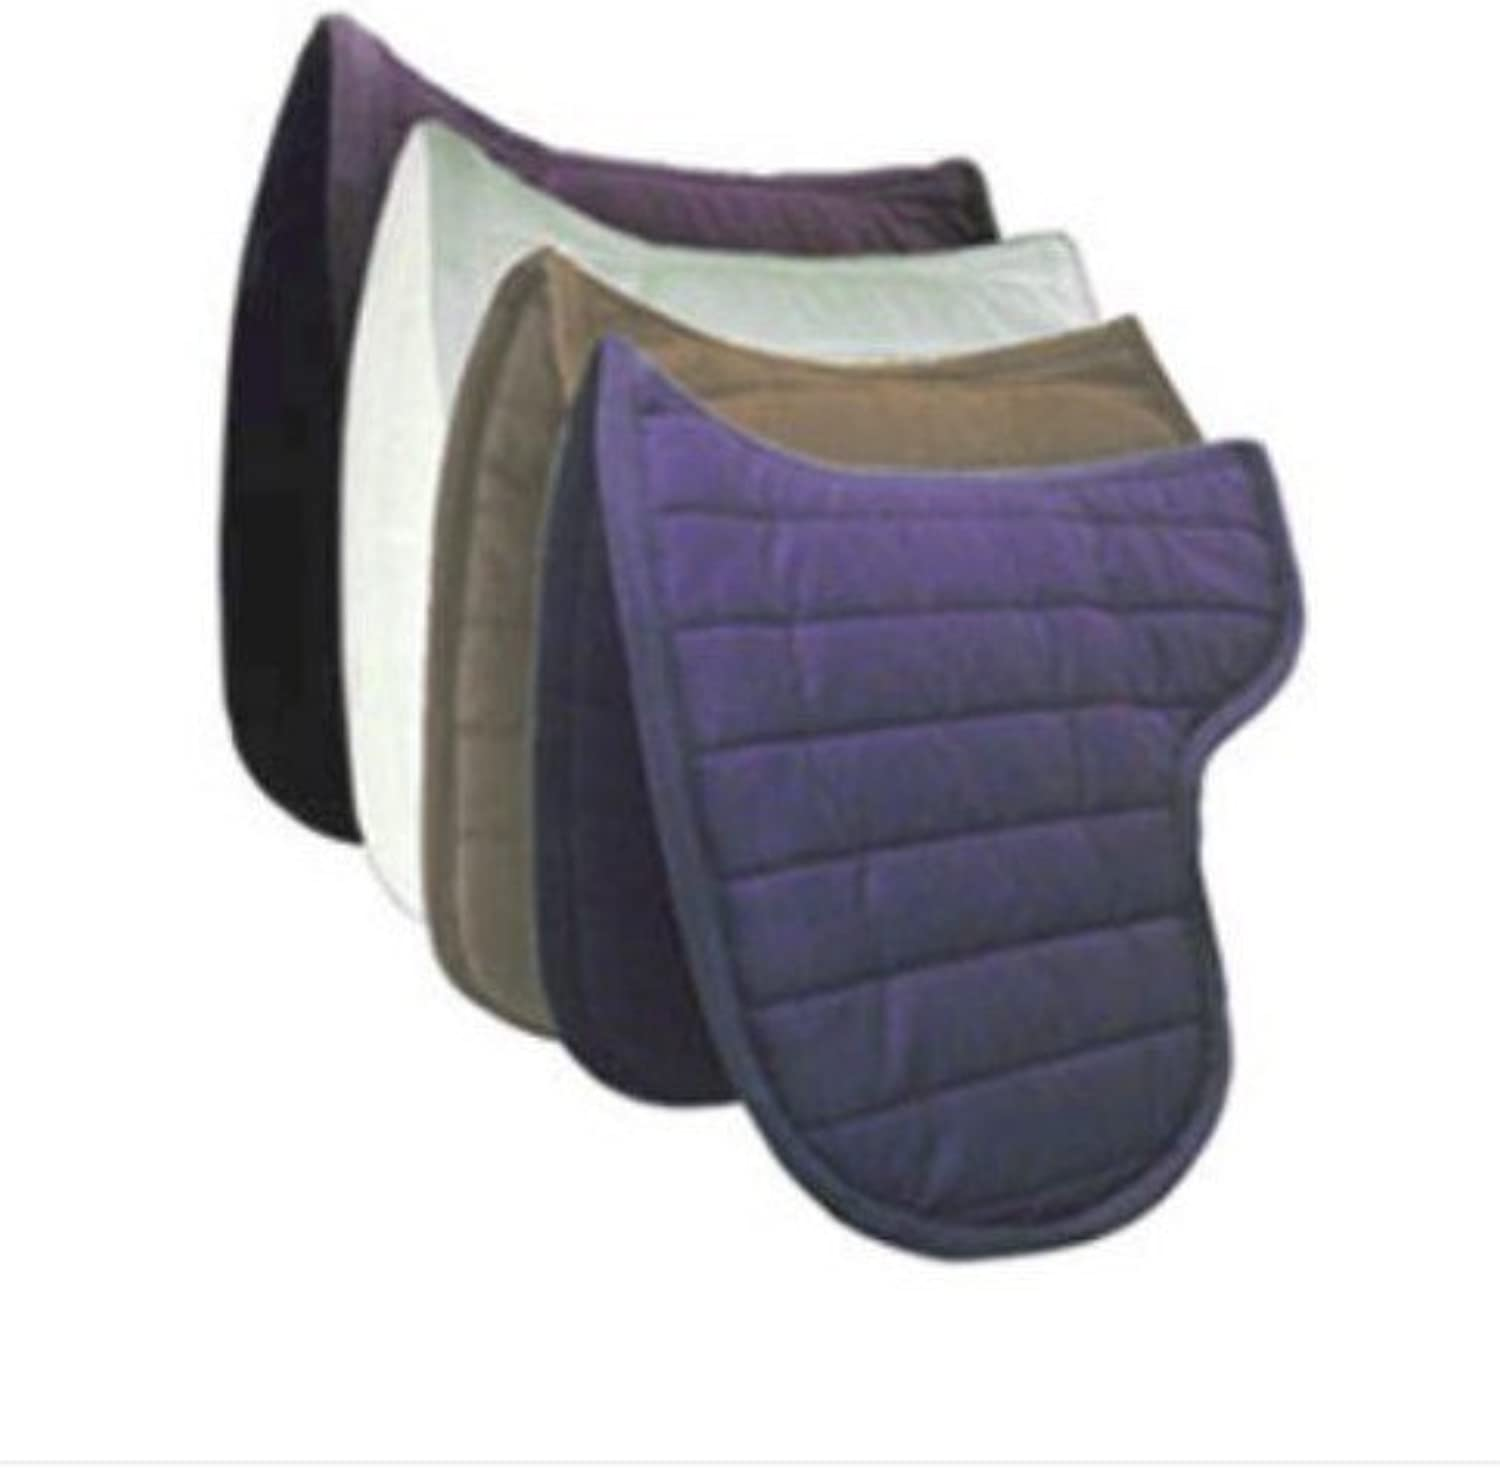 POLYPADS Forma Extra Saddle Pad Brown Brown